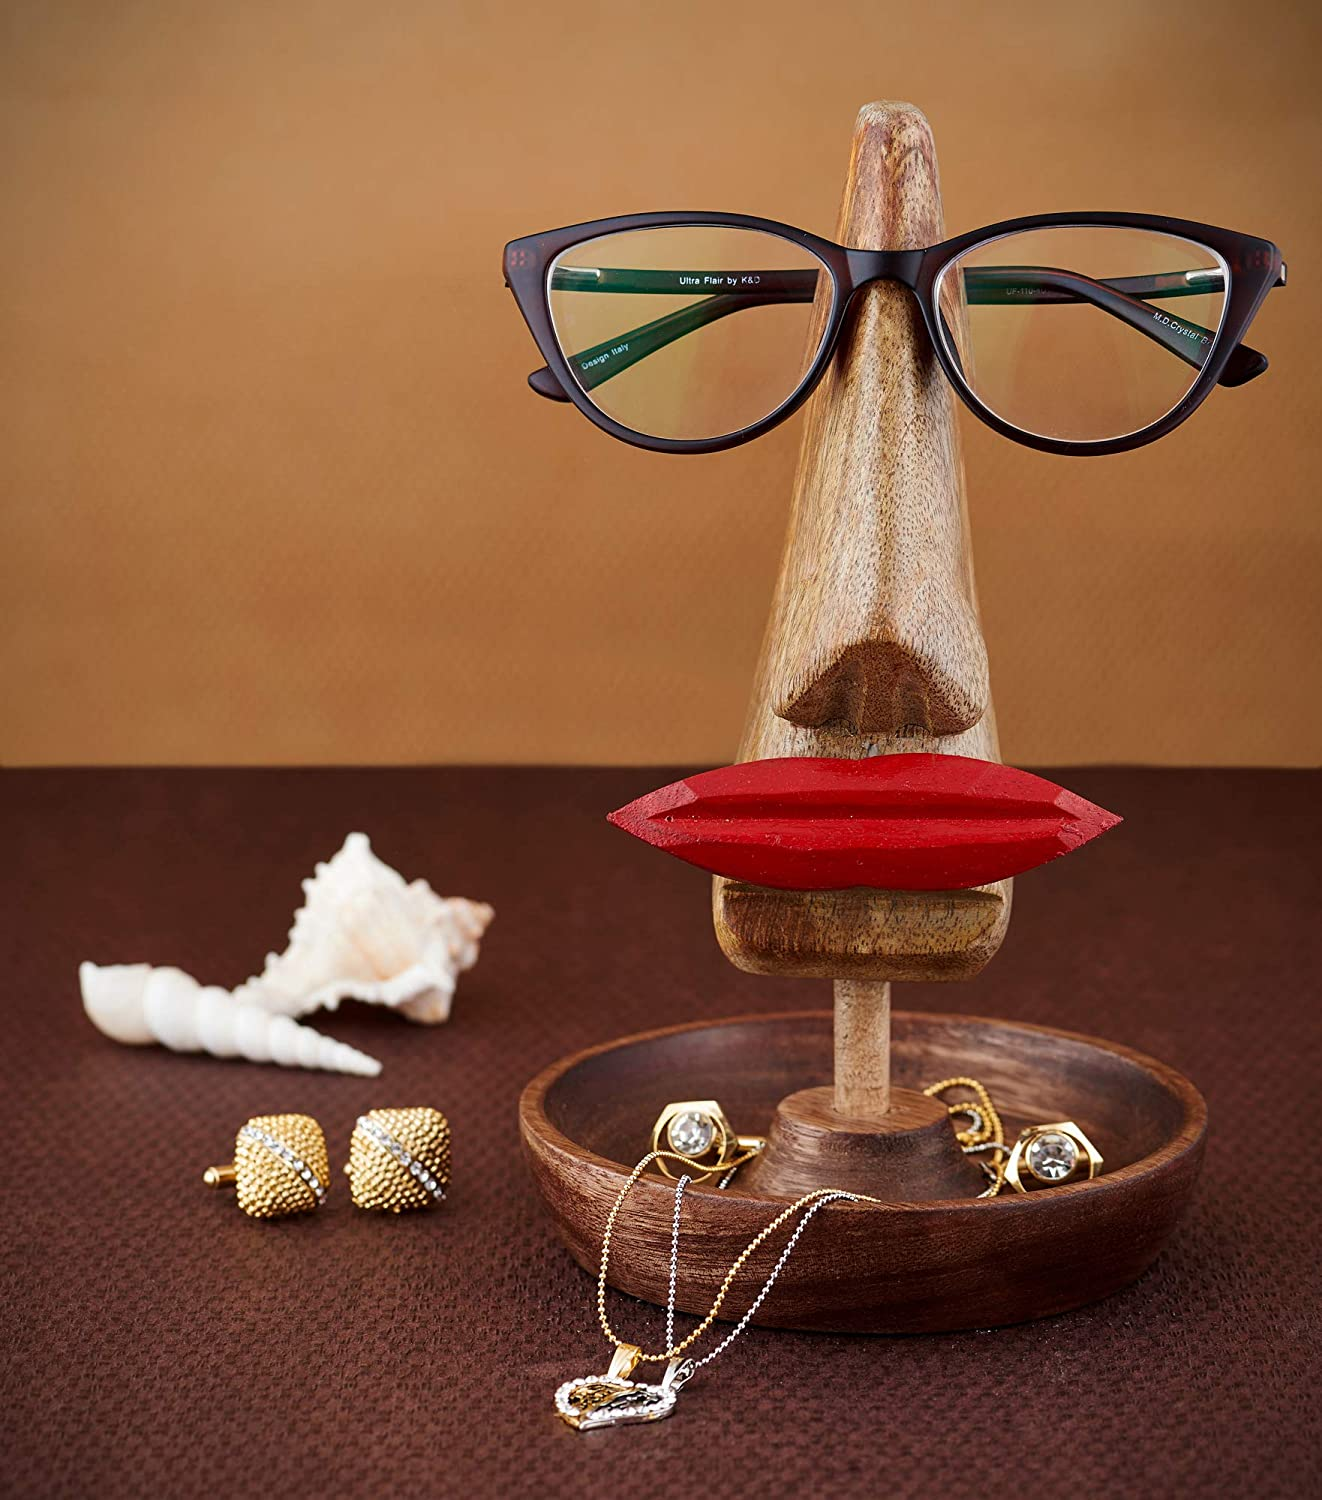 Eximious India Nose Spectacle Holder Wooden Eyeglass Stand Handmade Display Home and Office Night Stand Decor Accessories for Him or Her